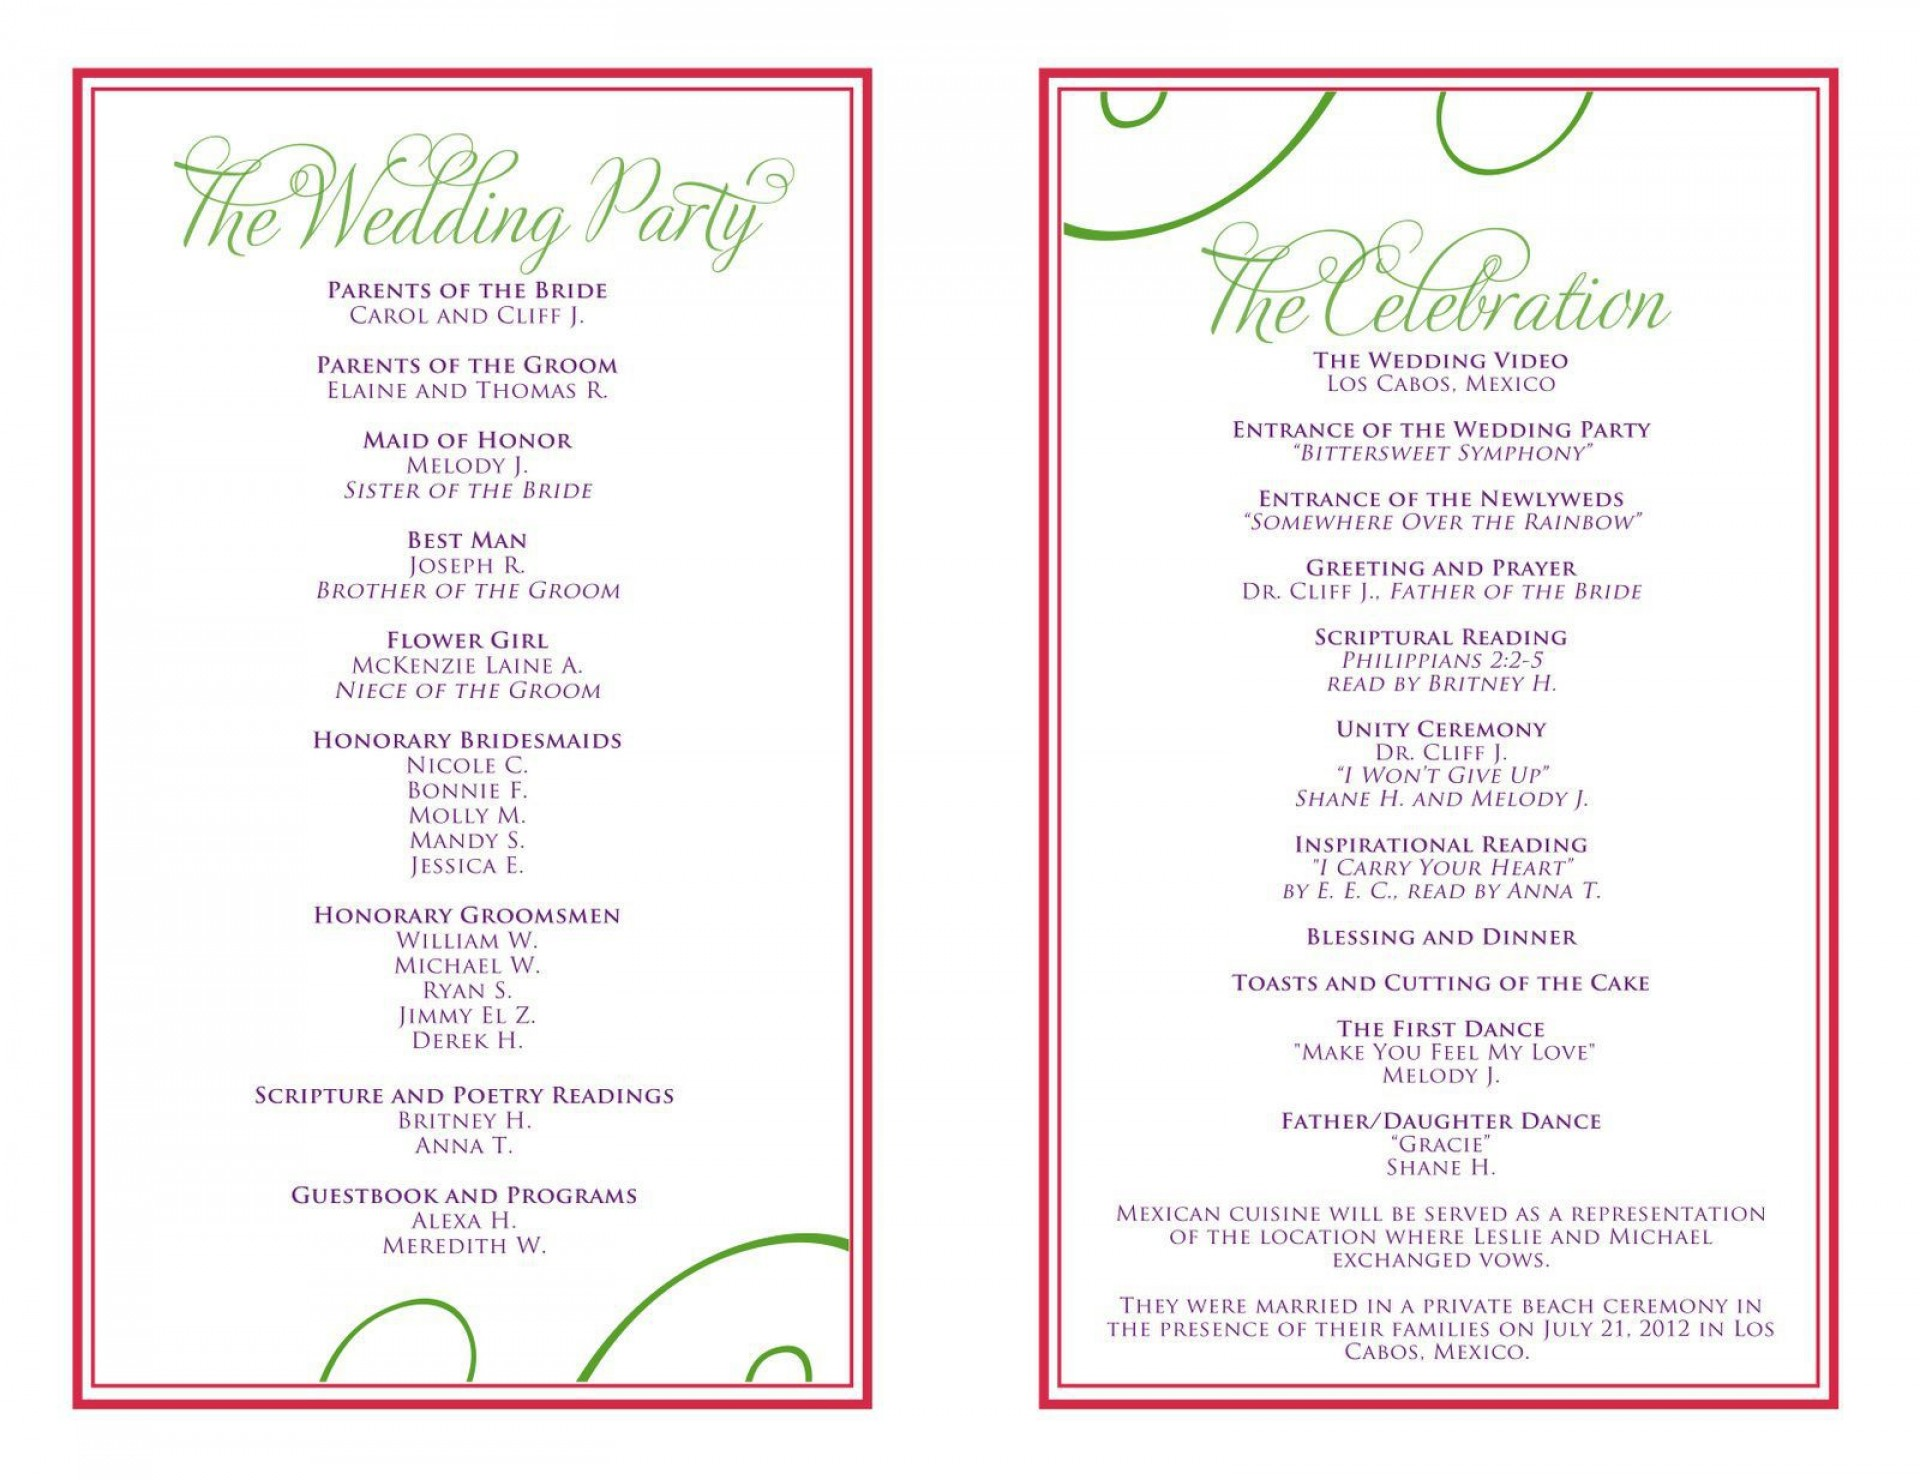 004 Stunning Free Downloadable Wedding Program Template High Definition  Templates That Can Be Printed Printable Fall Reception1920